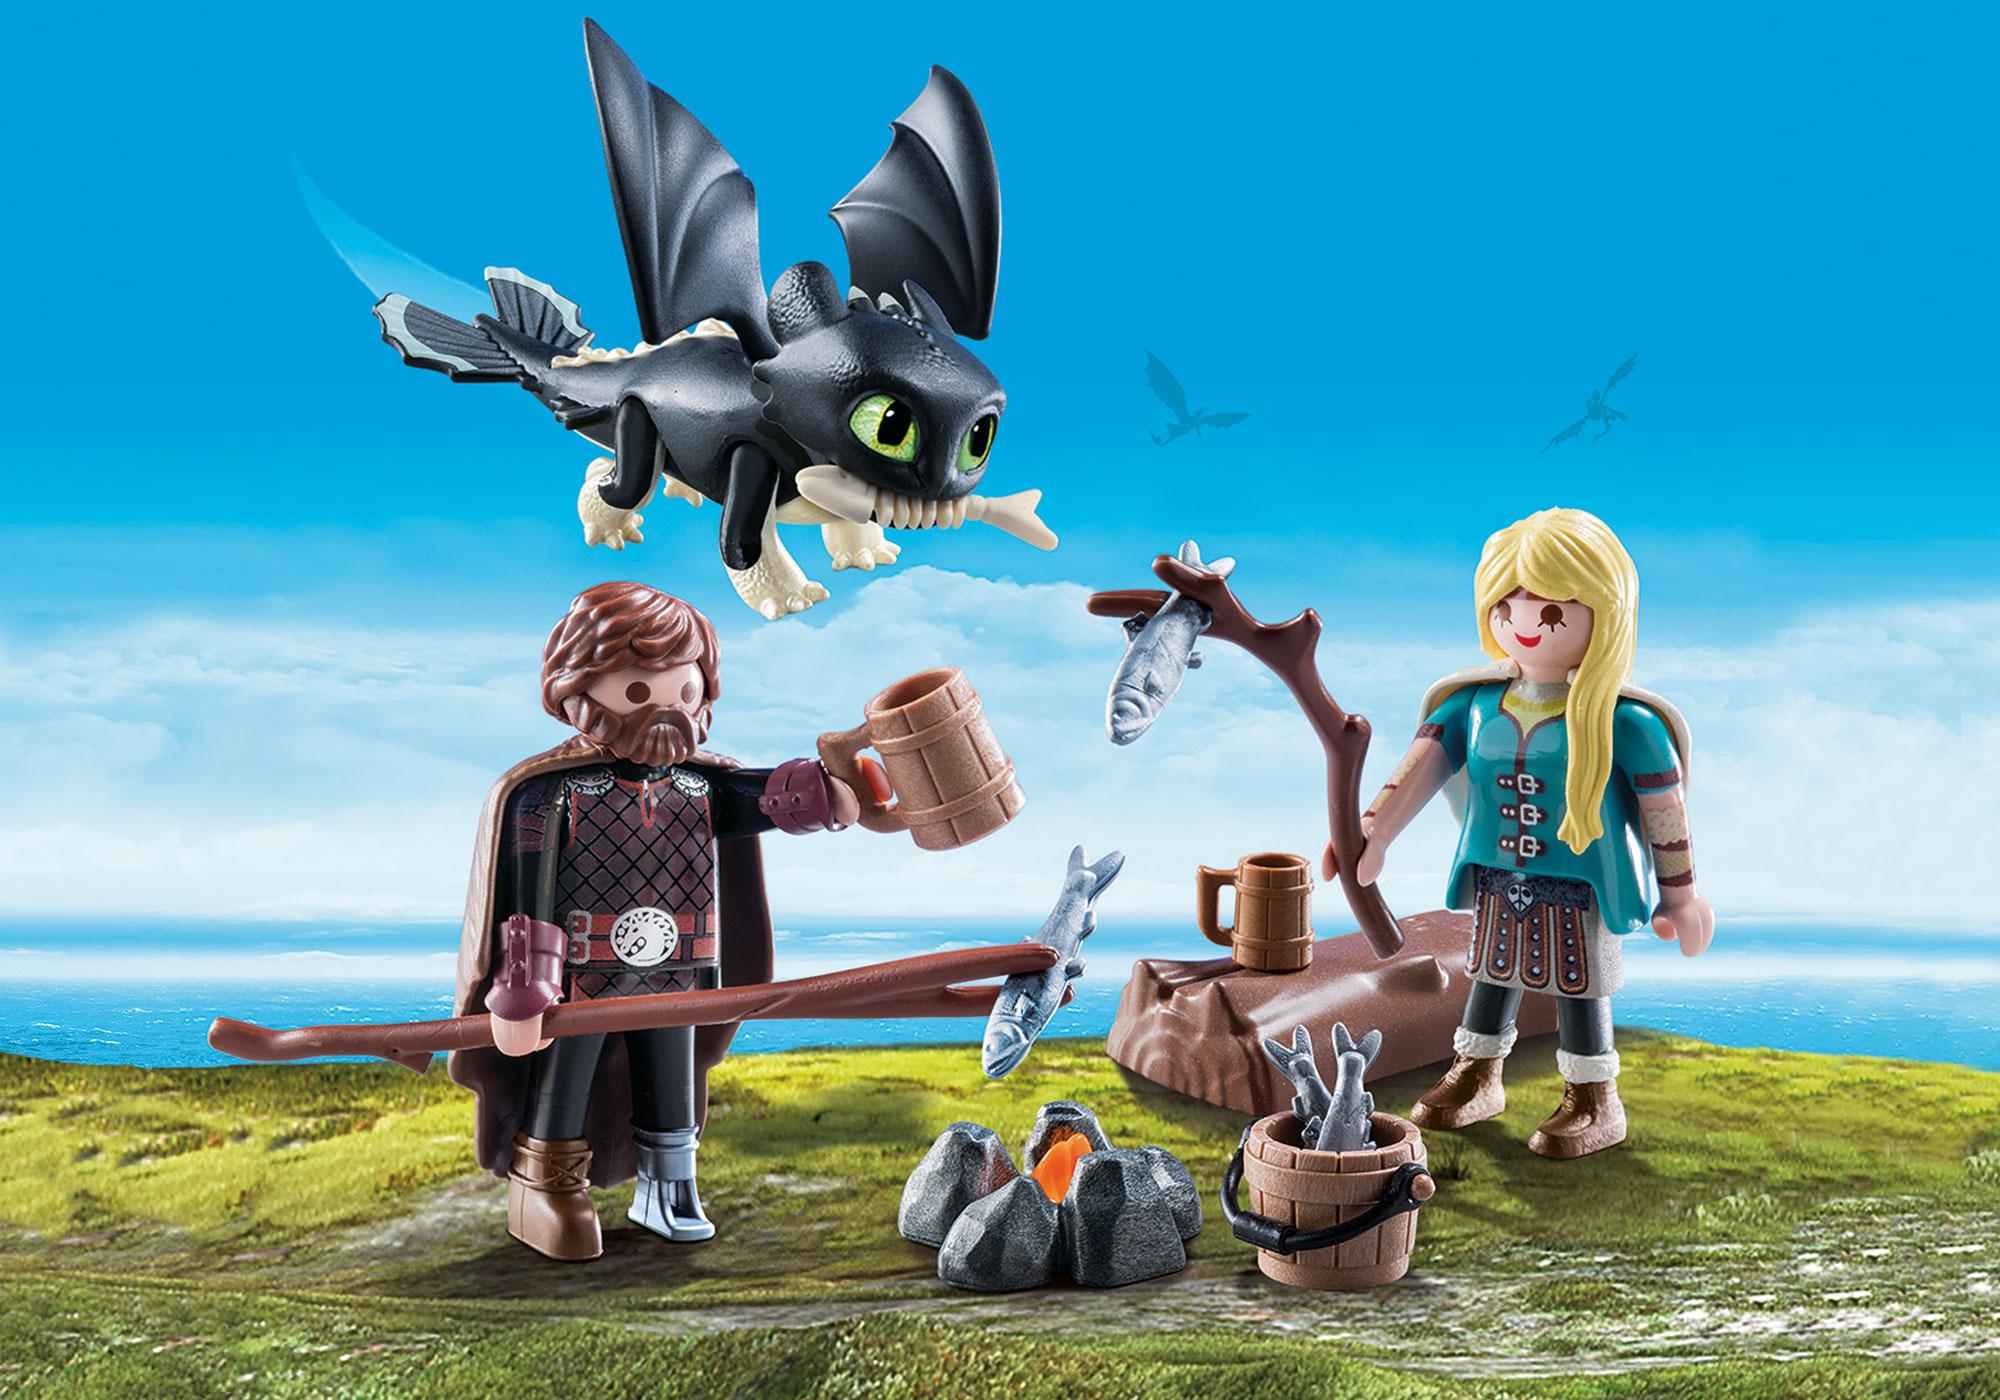 http://media.playmobil.com/i/playmobil/70040_product_detail/Hiccup e Astrid con Baby Dragon